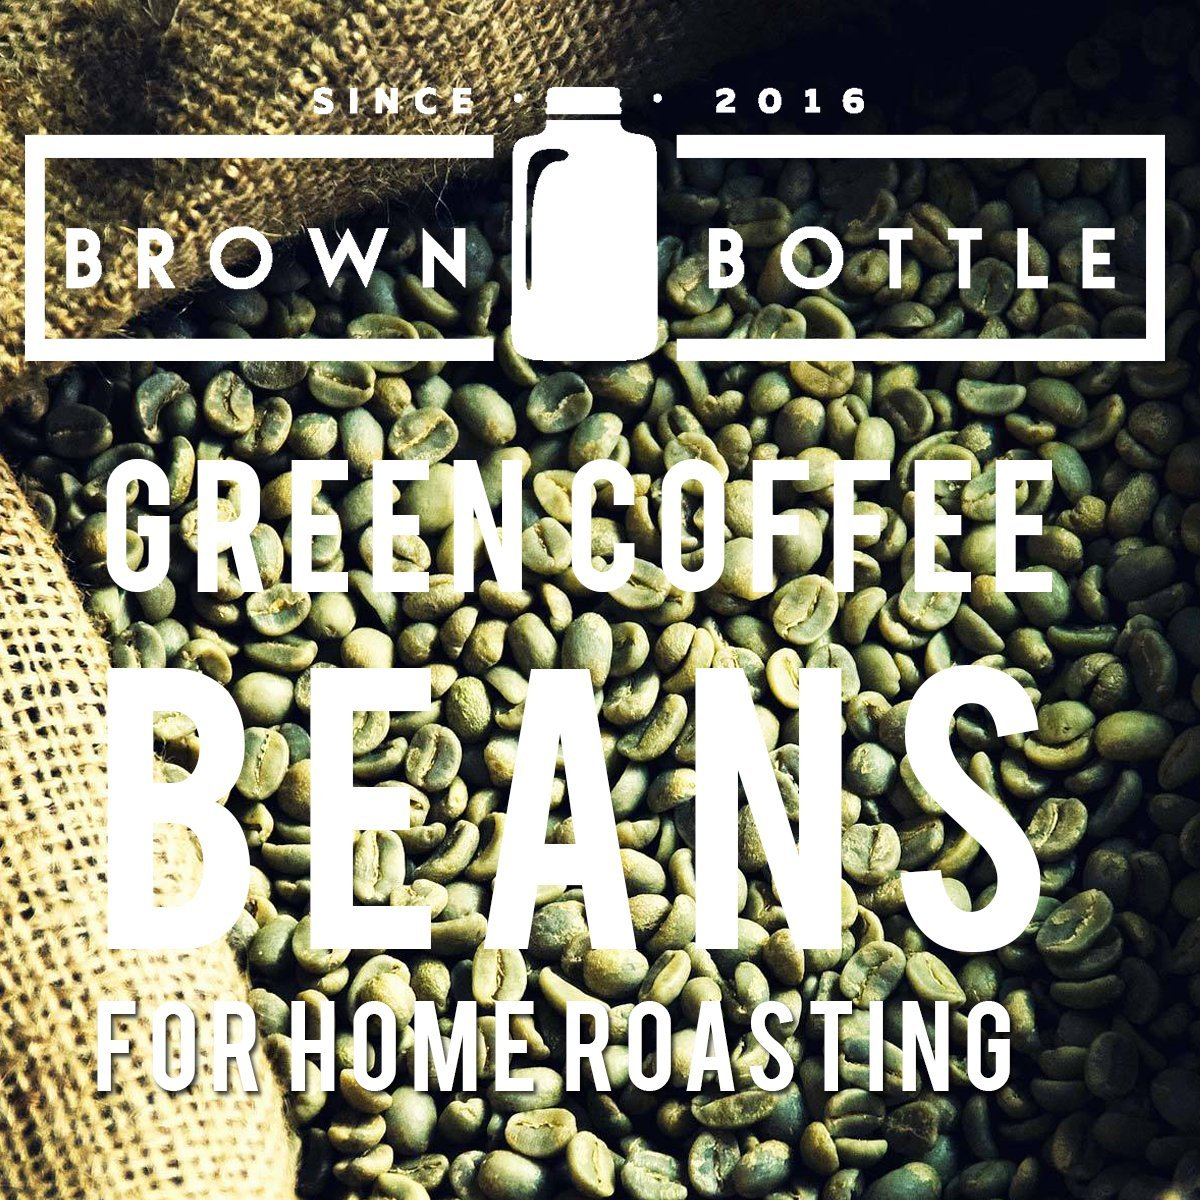 Green-Brazilian-Coffee-Beans-100-Arabica-Speciality-Green-Coffee-Beans-From-Brazil-For-Home-Roasting